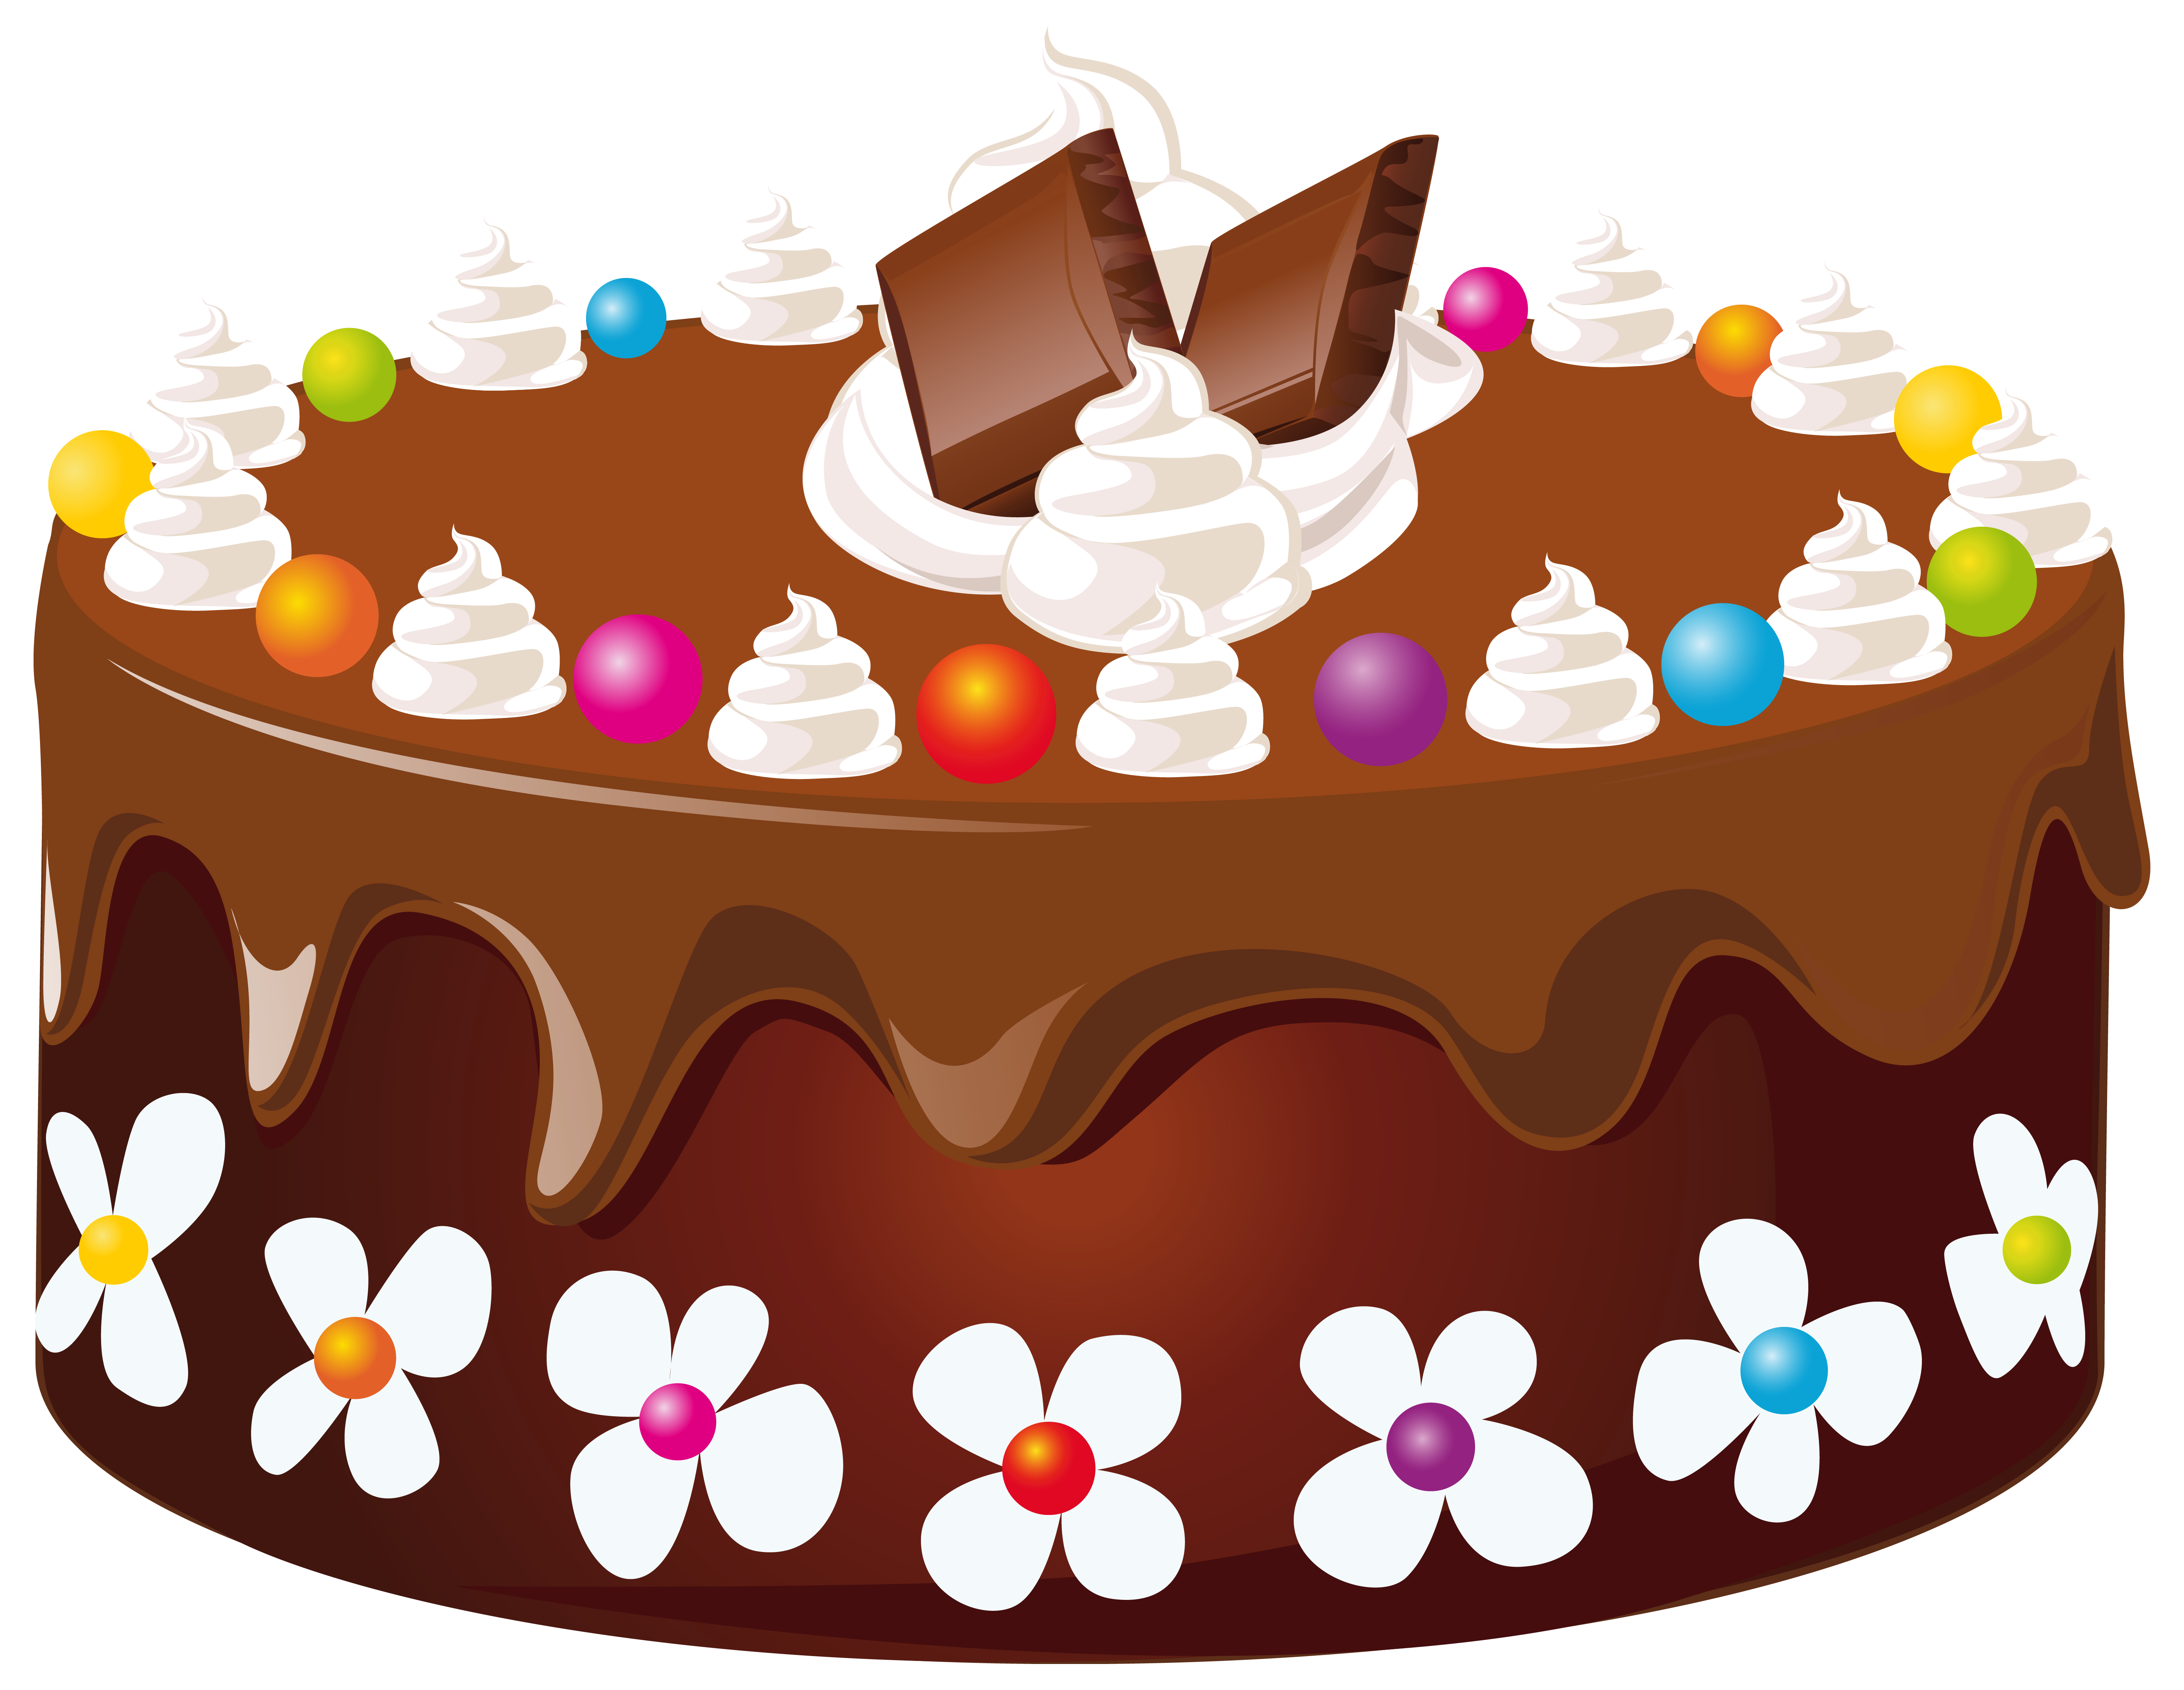 chocolate cake clipart free 20 free Cliparts | Download ...